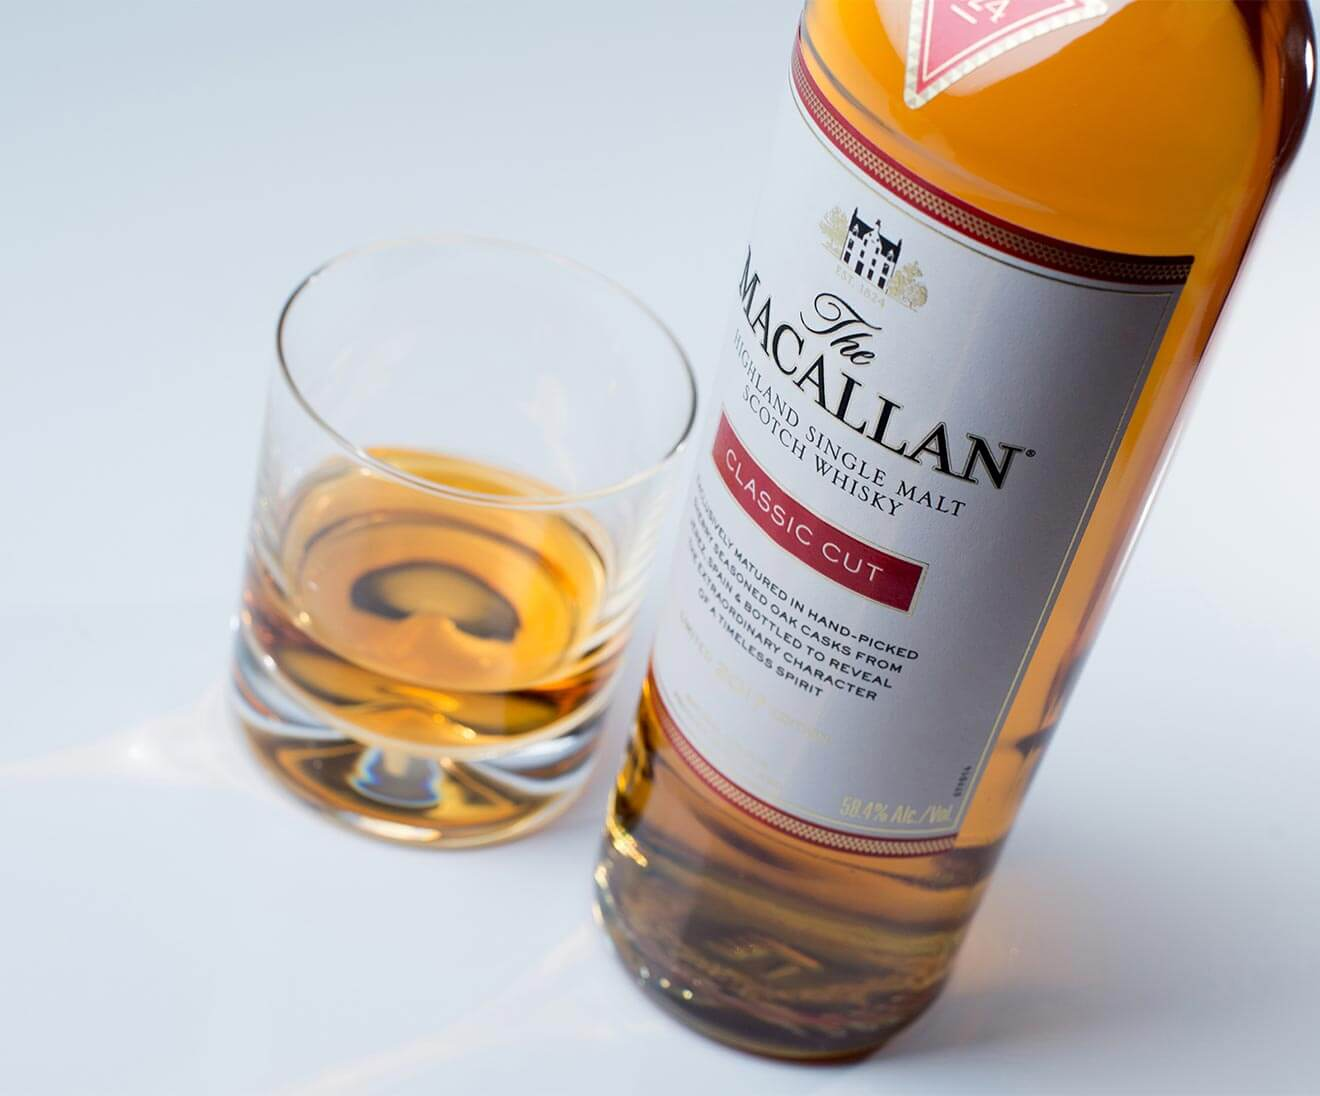 The Macallan Classic, with rocks glass, neat pour, on white